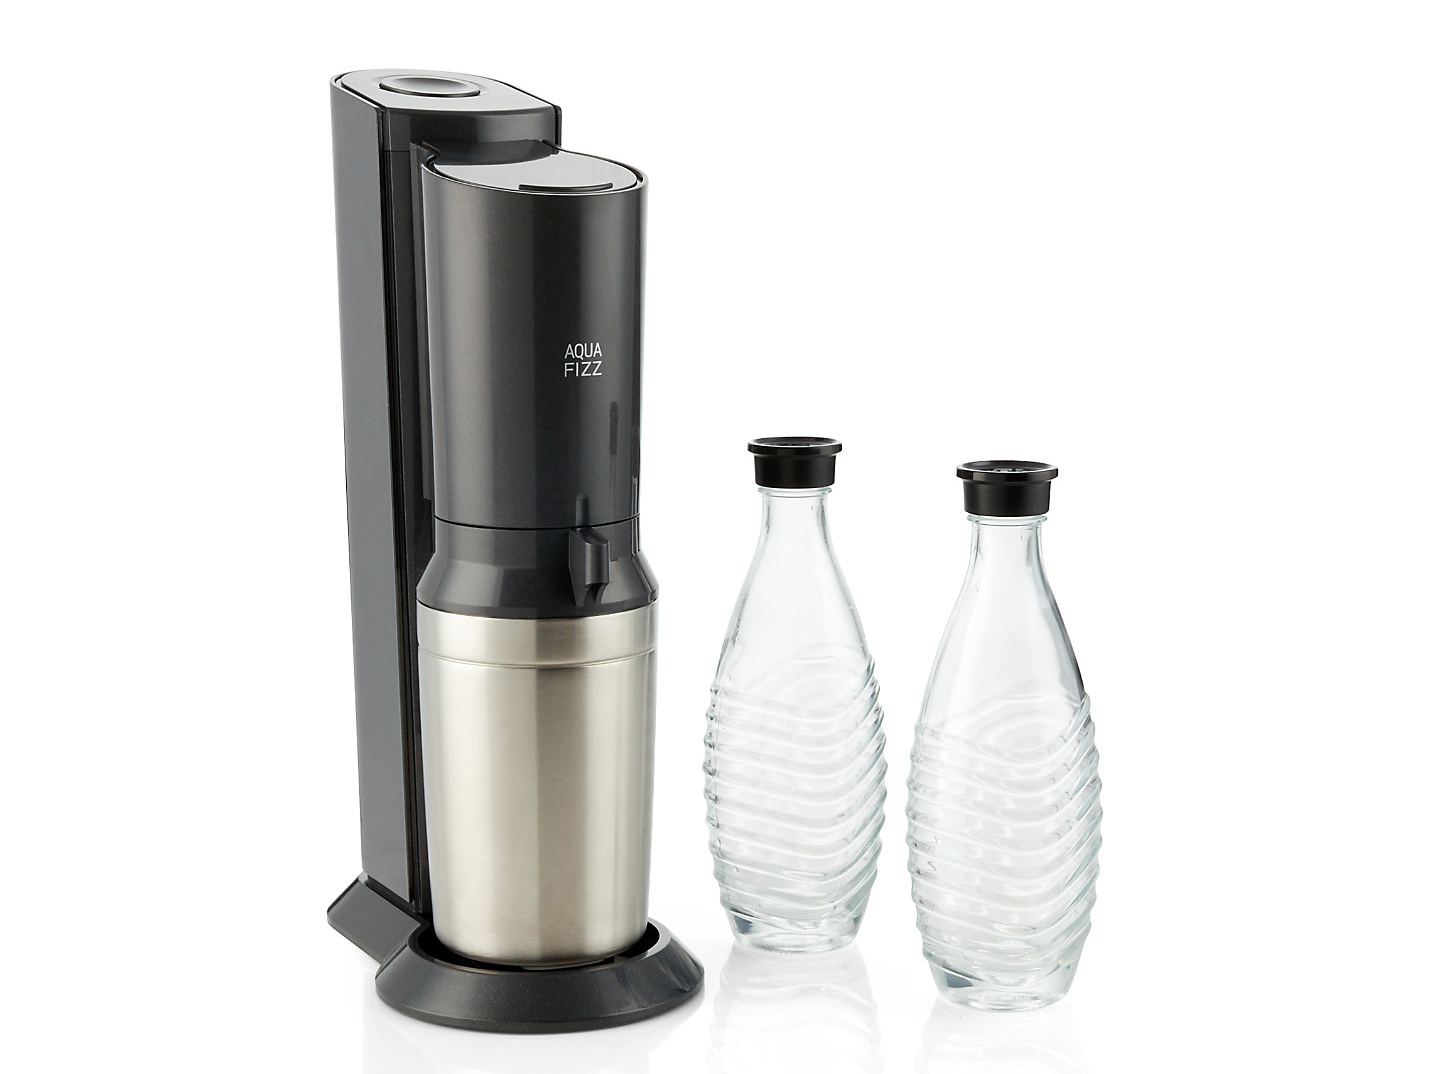 Sodastream and two bottles